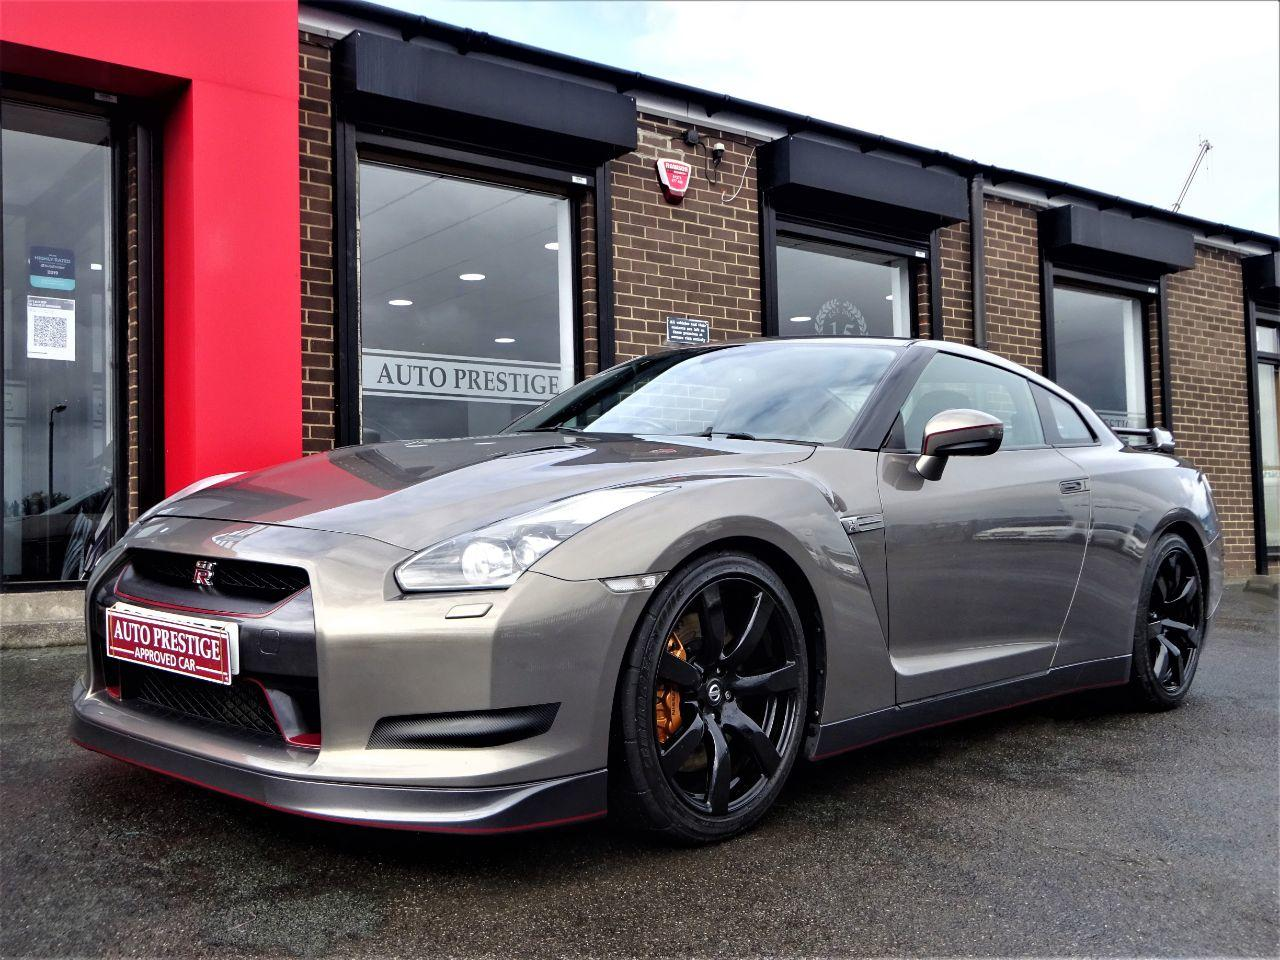 Nissan GT-R 3.8 GT-R PREMIUM EDITION S-A STANDARD CAR LOW OWNERS 60 REG GARAGED CAR Coupe Petrol Silver at Autoprestige Bradford